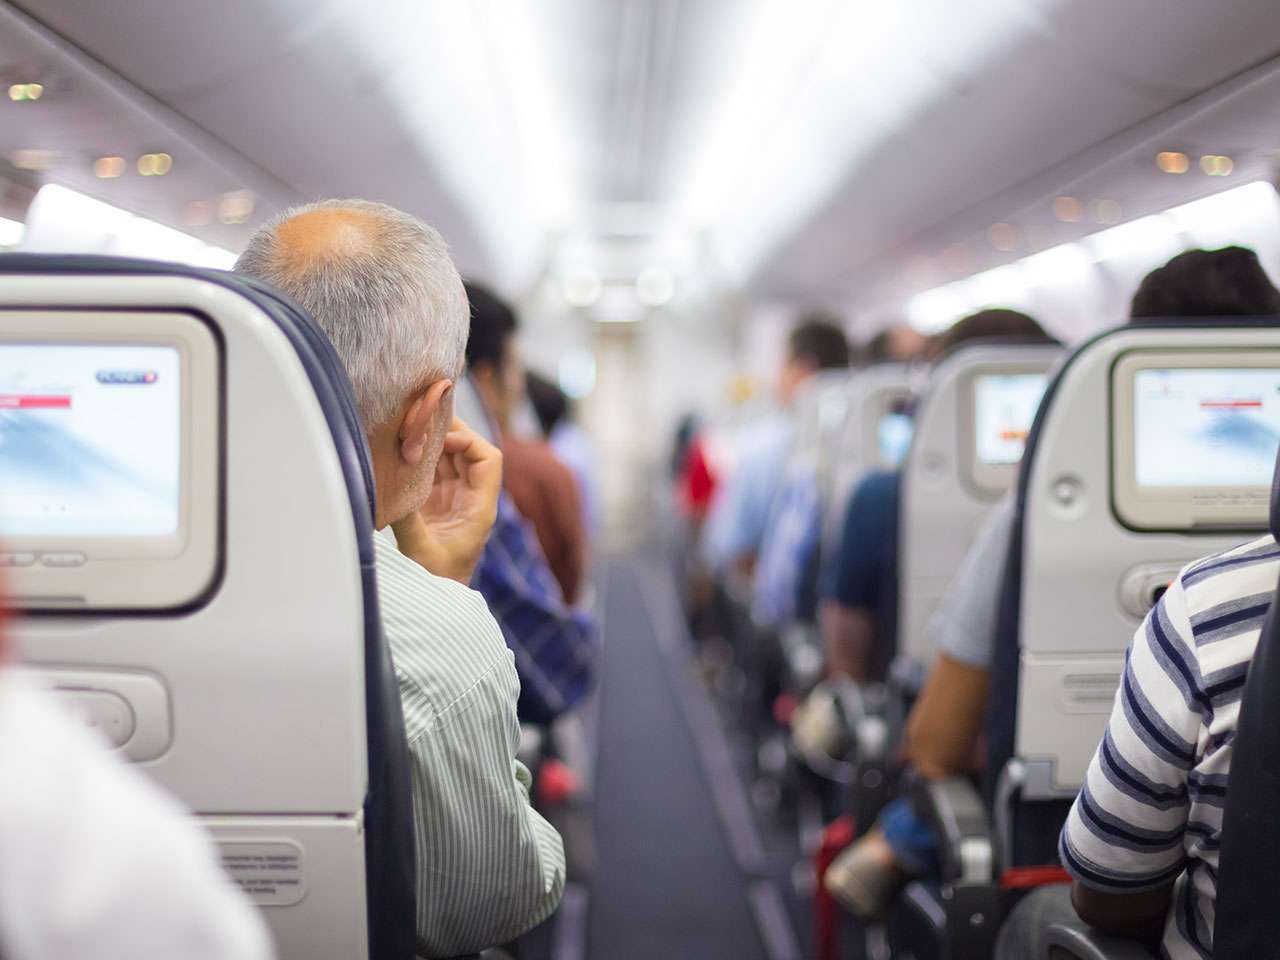 The Rules of Airplane Etiquette